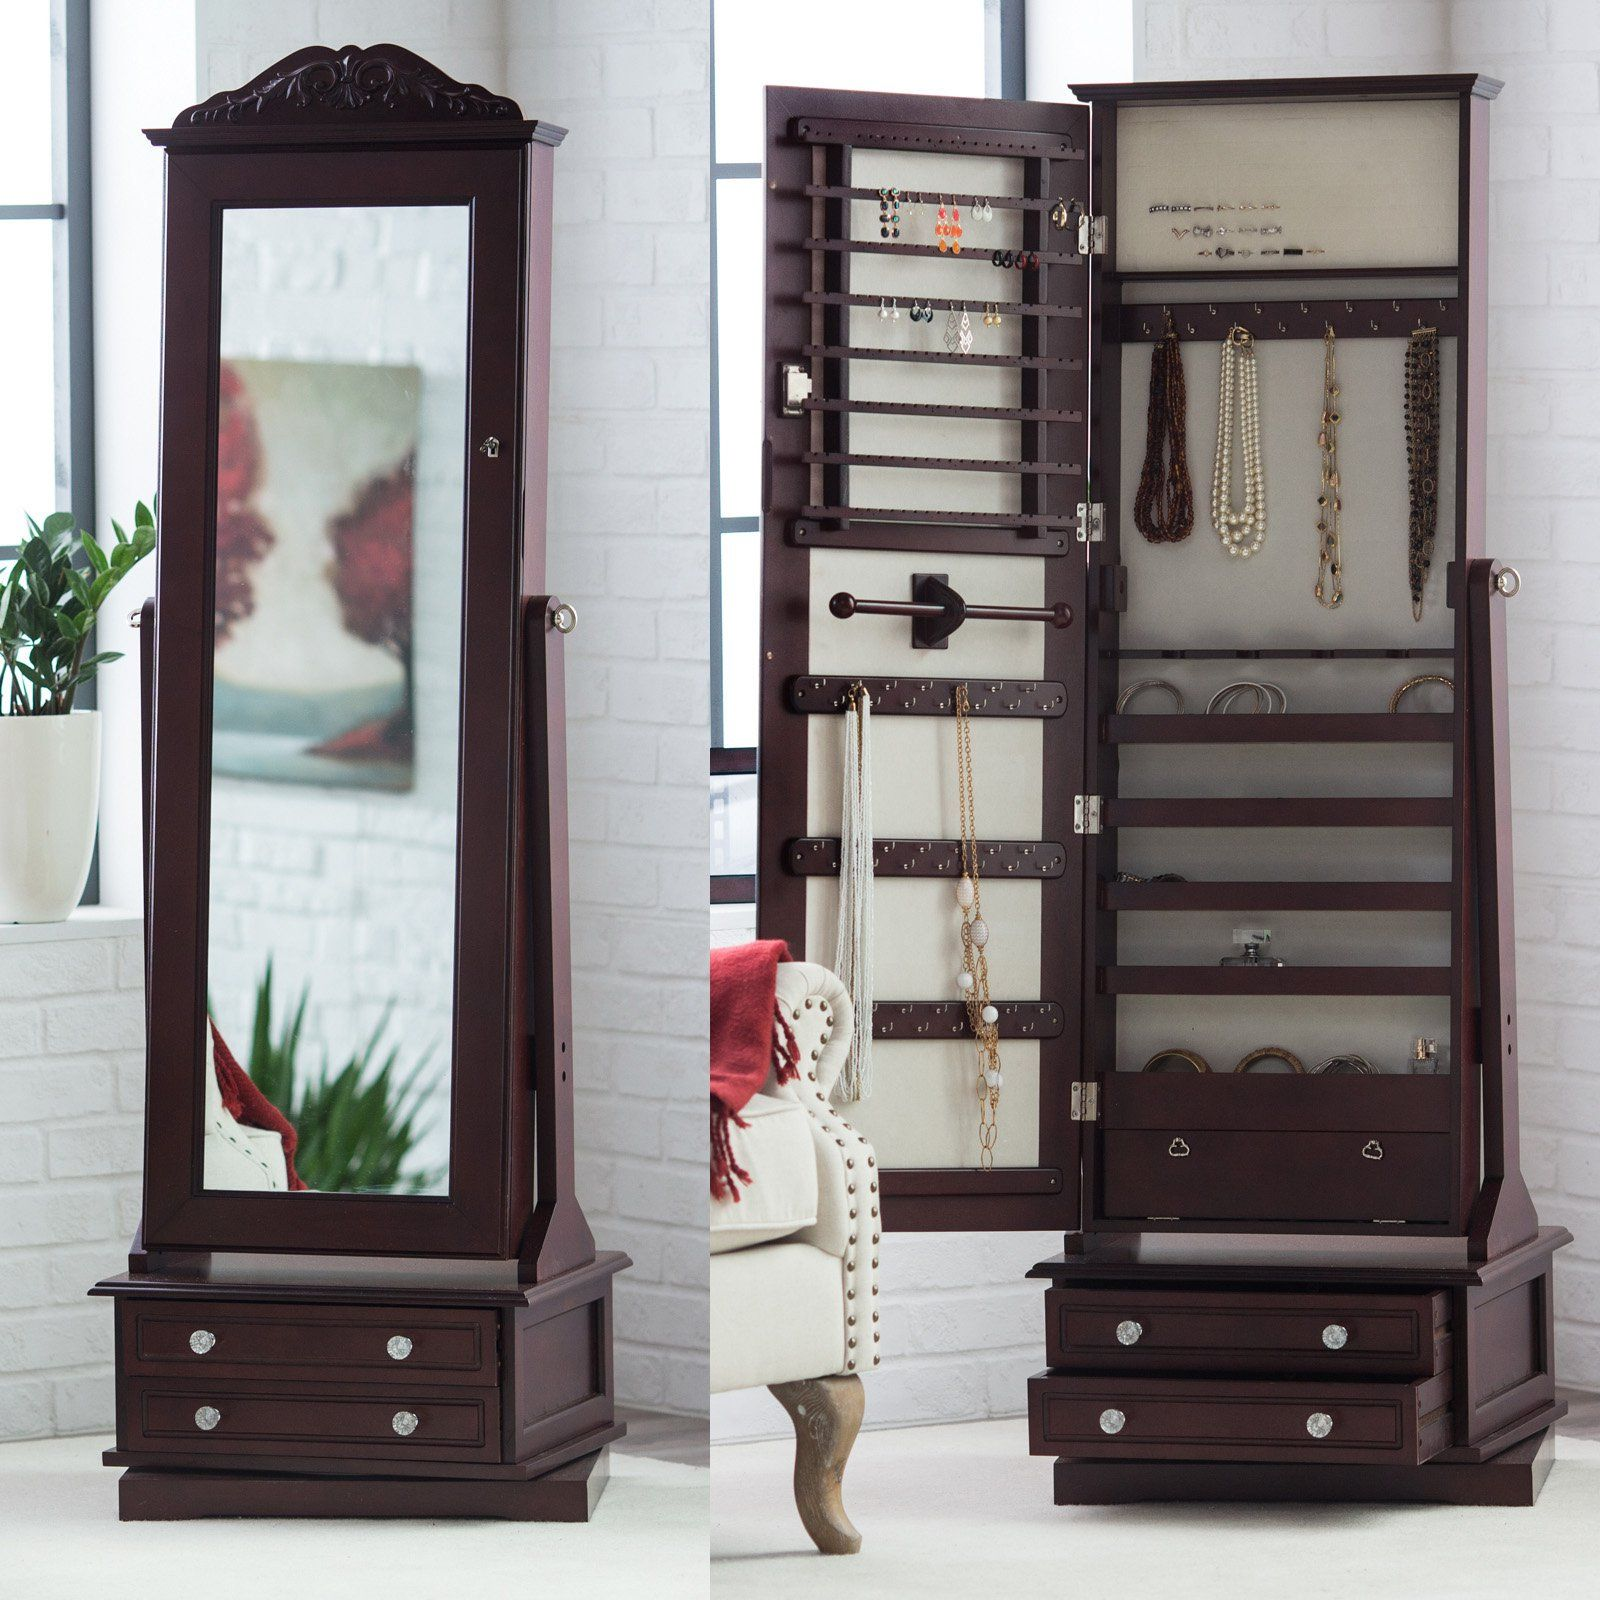 37++ Standing jewelry boxes at walmart information